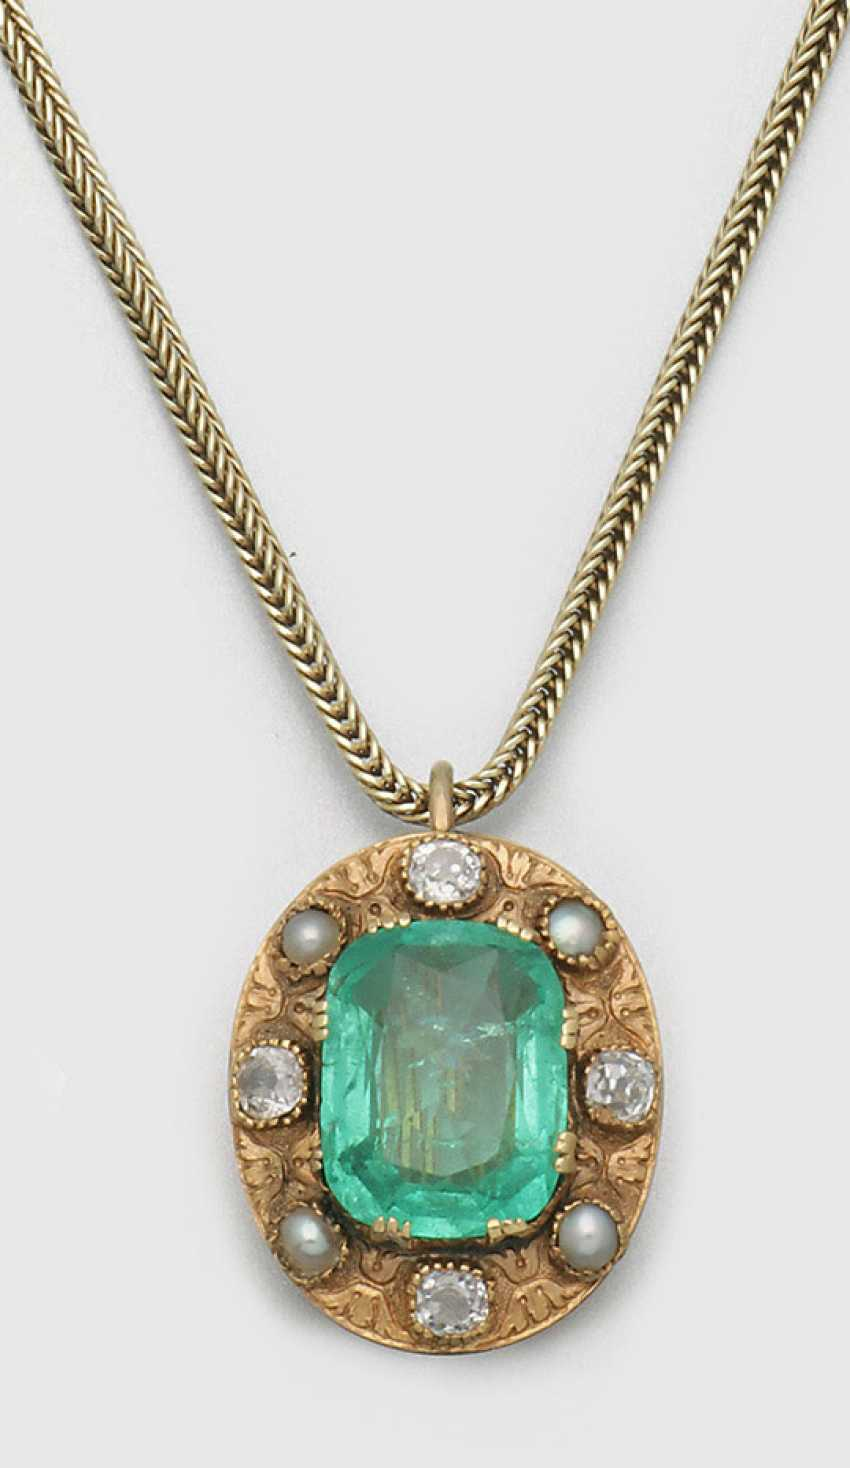 Colombian emerald pendant with chain - photo 1